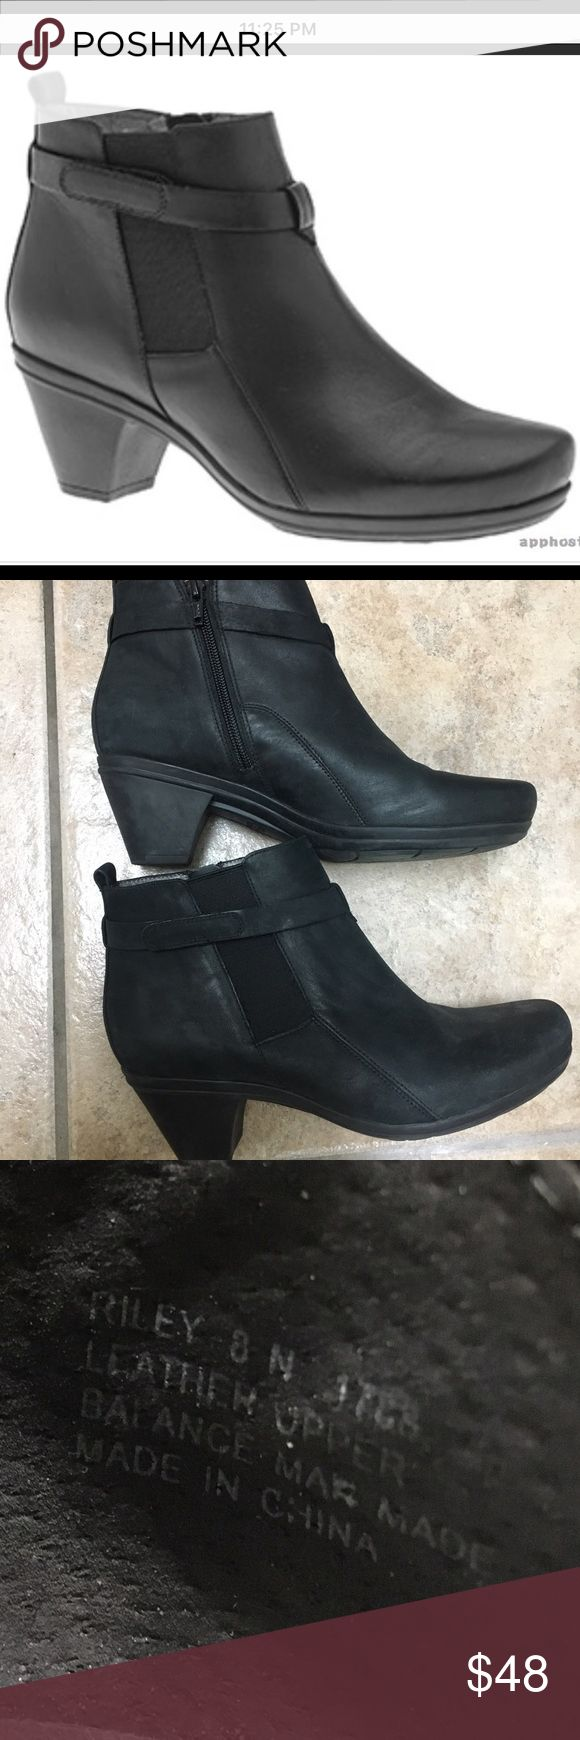 👣Abeo👣 Bio Riley 👣 8N Black Metatarsal Boots! New to yoU! Riley Black Women's BioMechanical Shoes. Abeo Shoes Heeled Boots